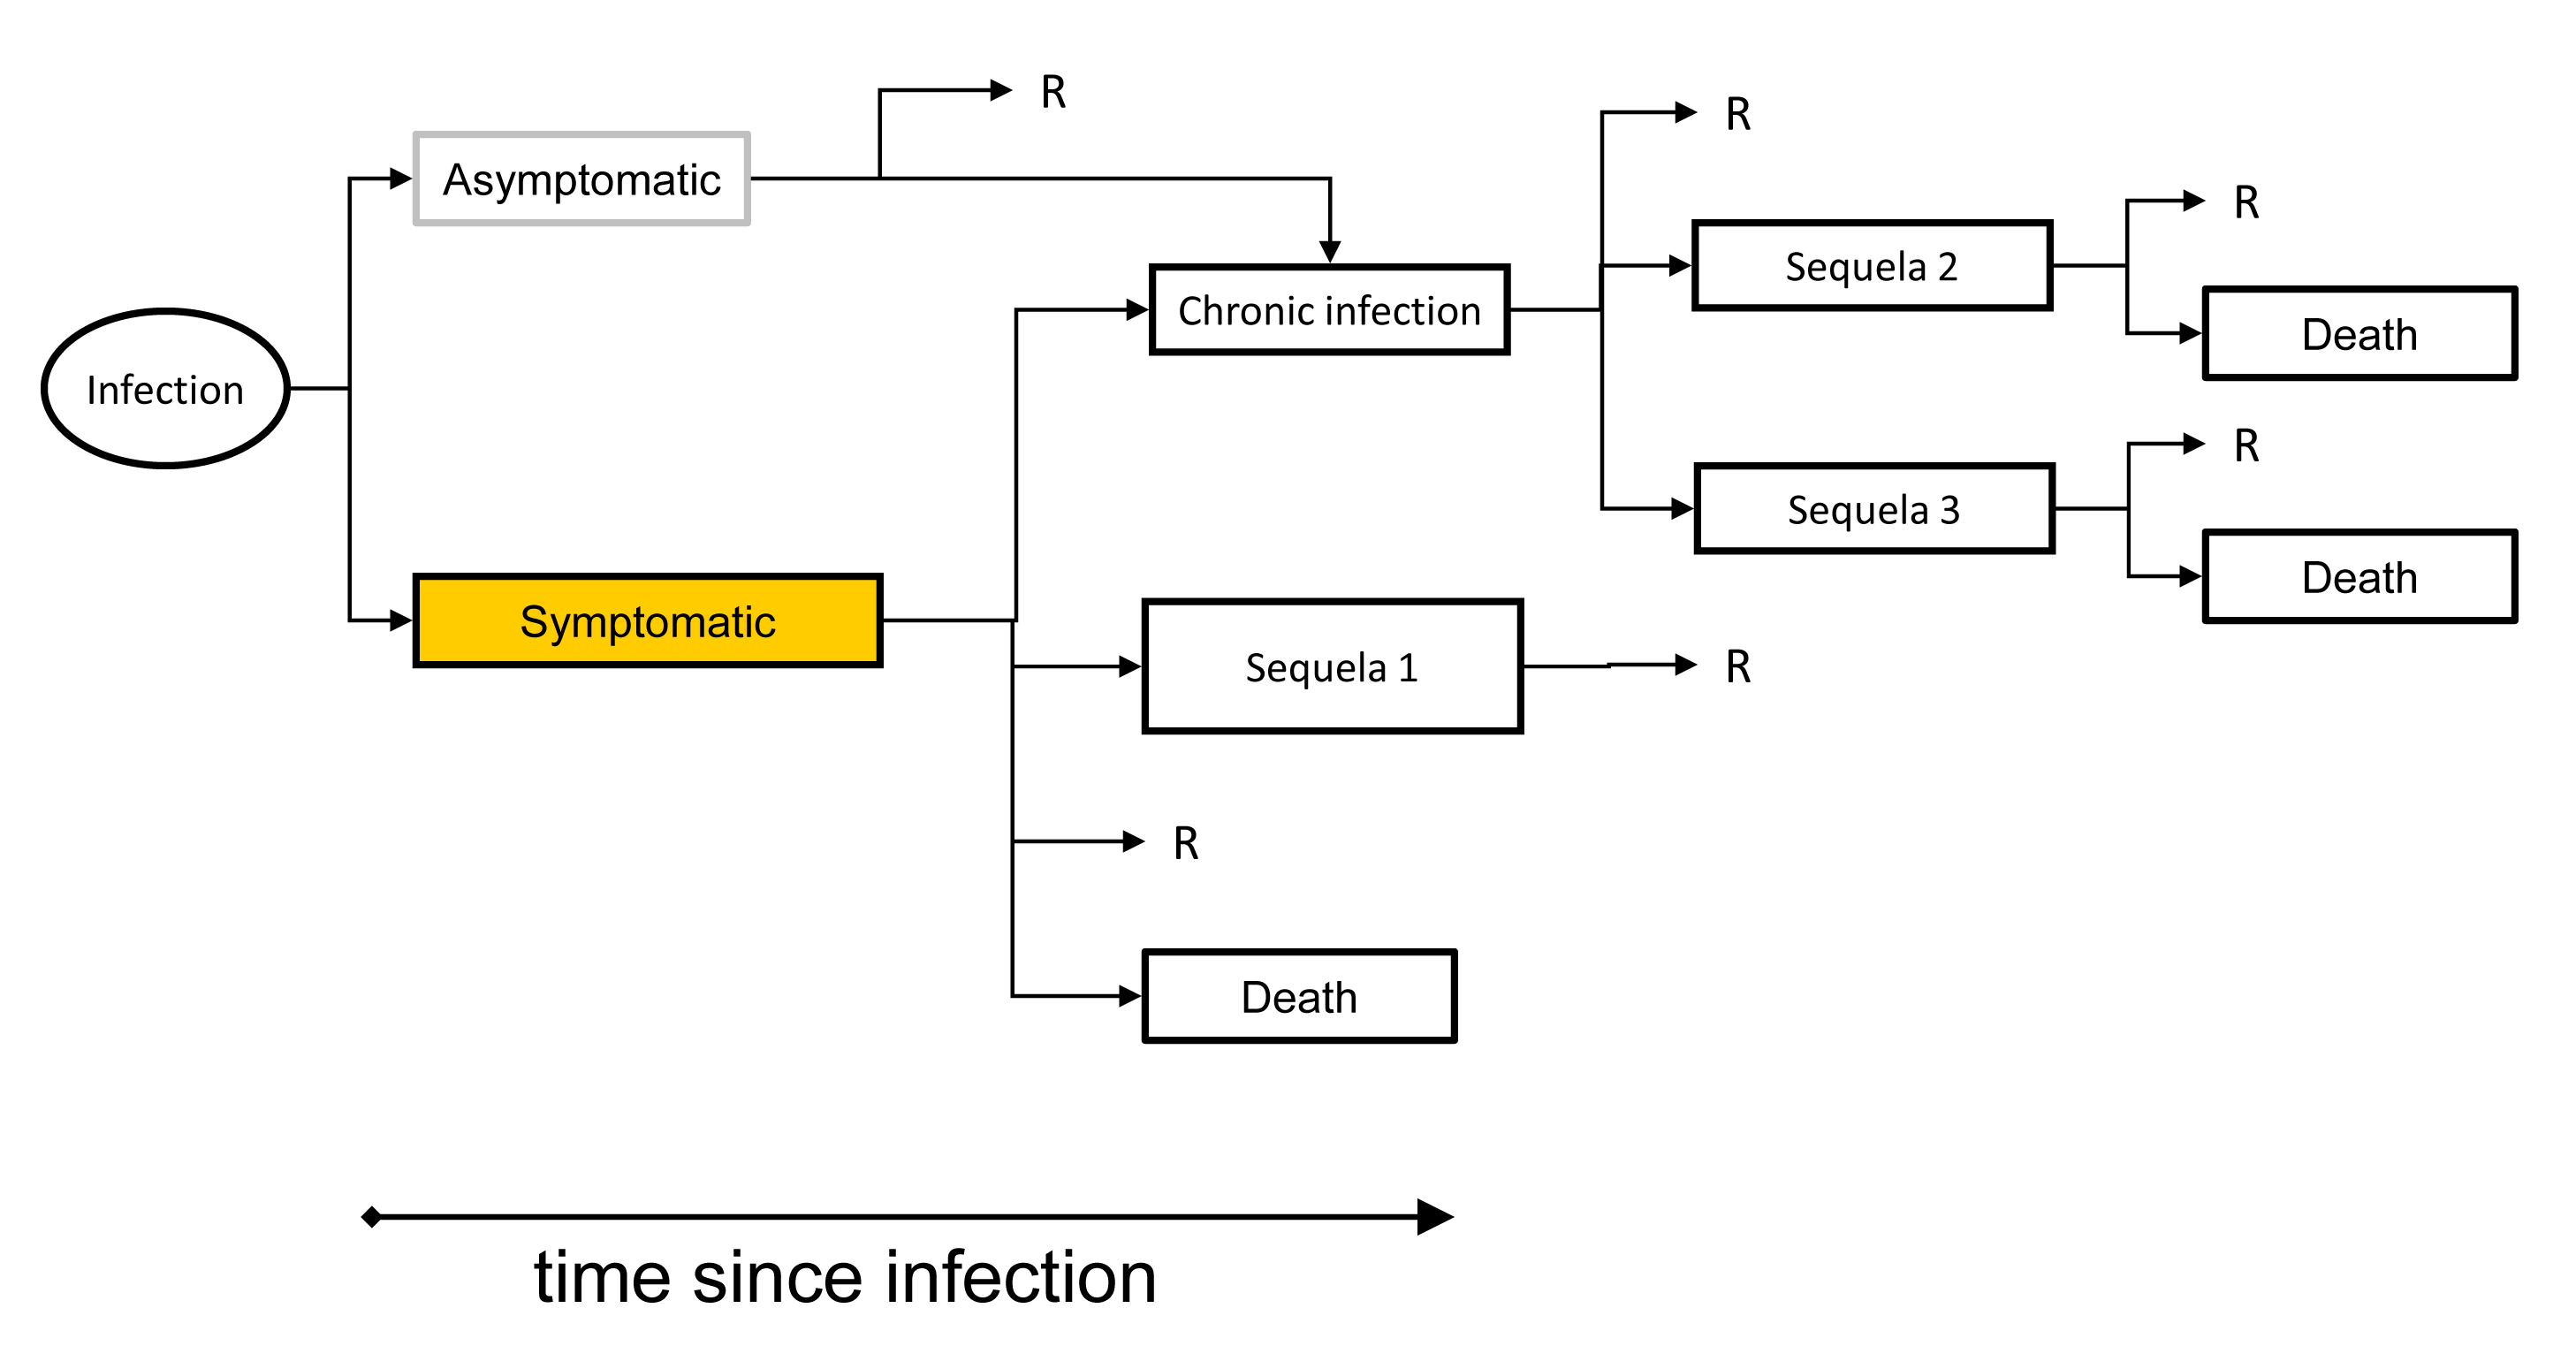 An outcome tree linking exposure, infection and all sequelae.